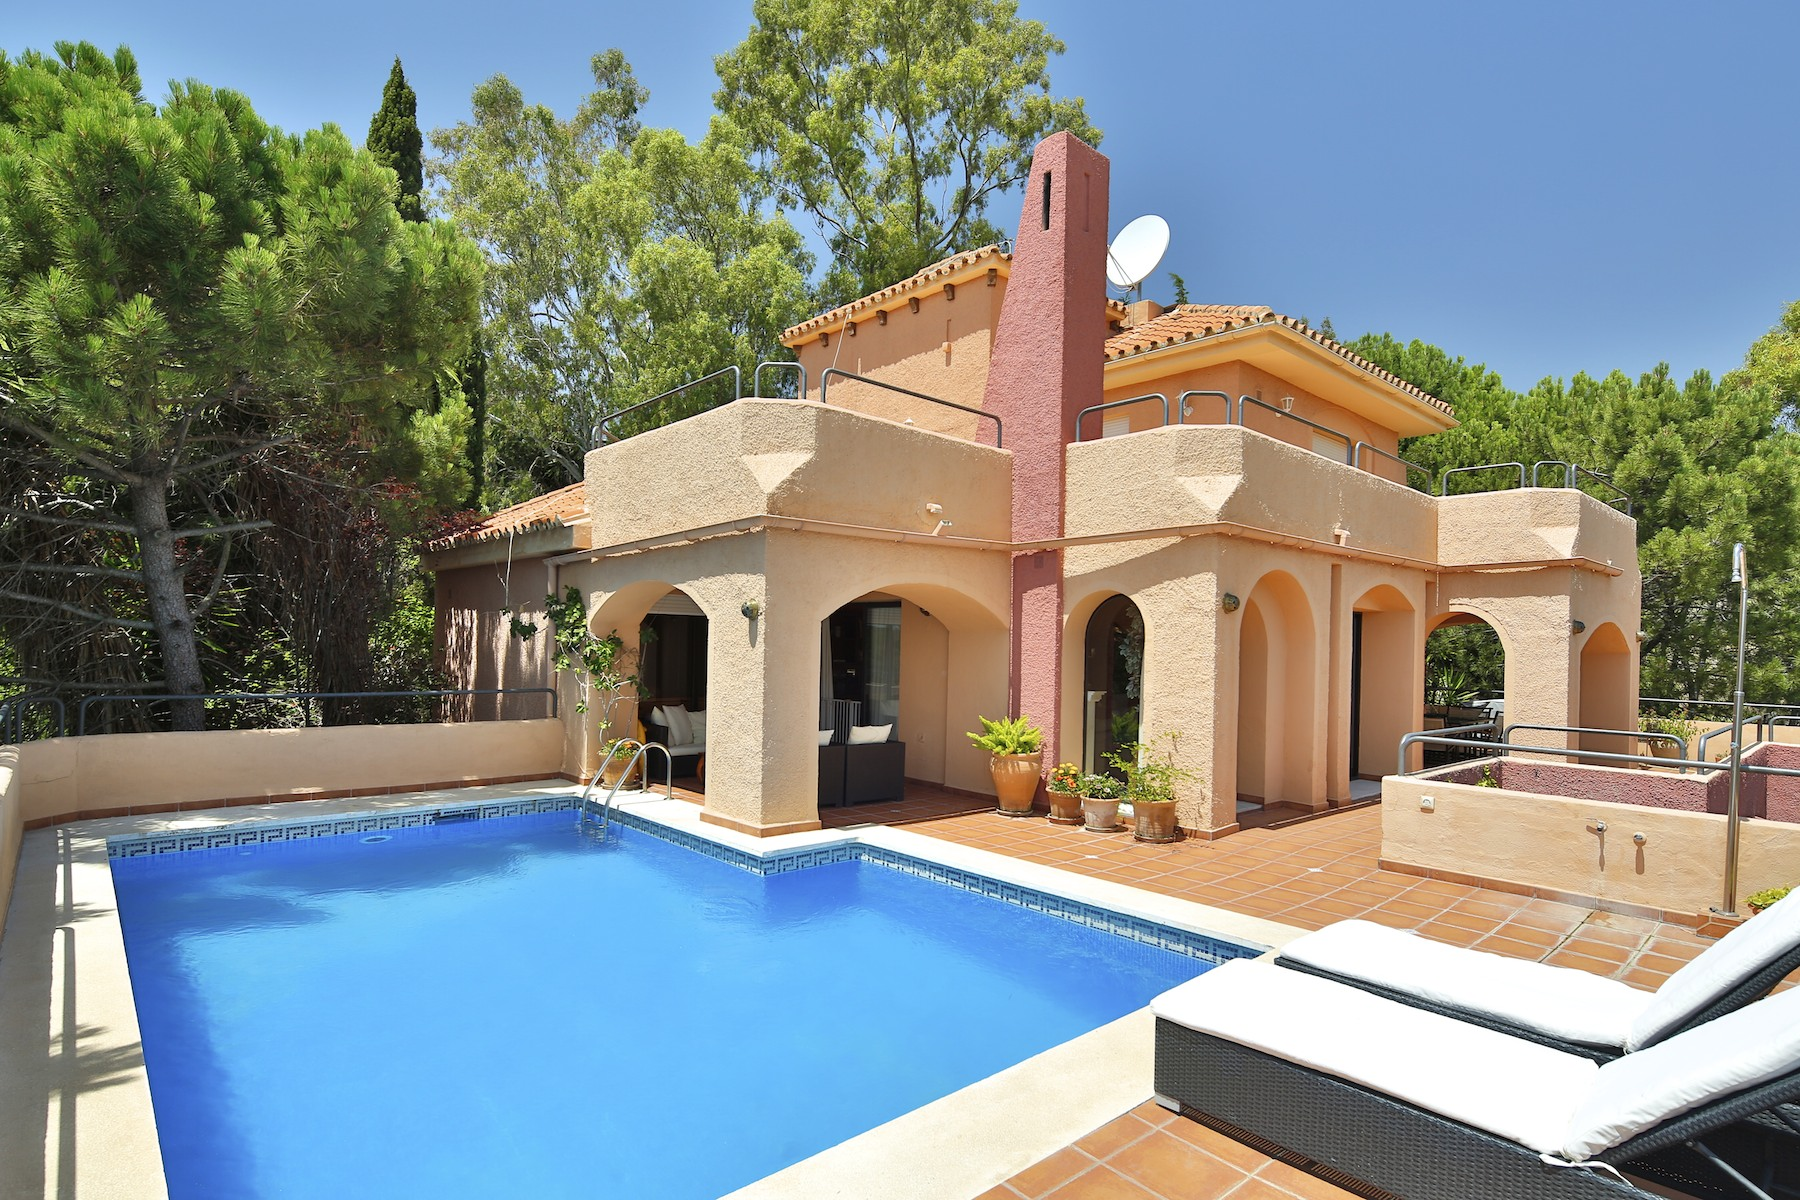 Tek Ailelik Ev için Satış at Charming villa in a gated community of the golf valley Nueva Andalucia Other Andalucia, Andalucia, 29660 Ispanya